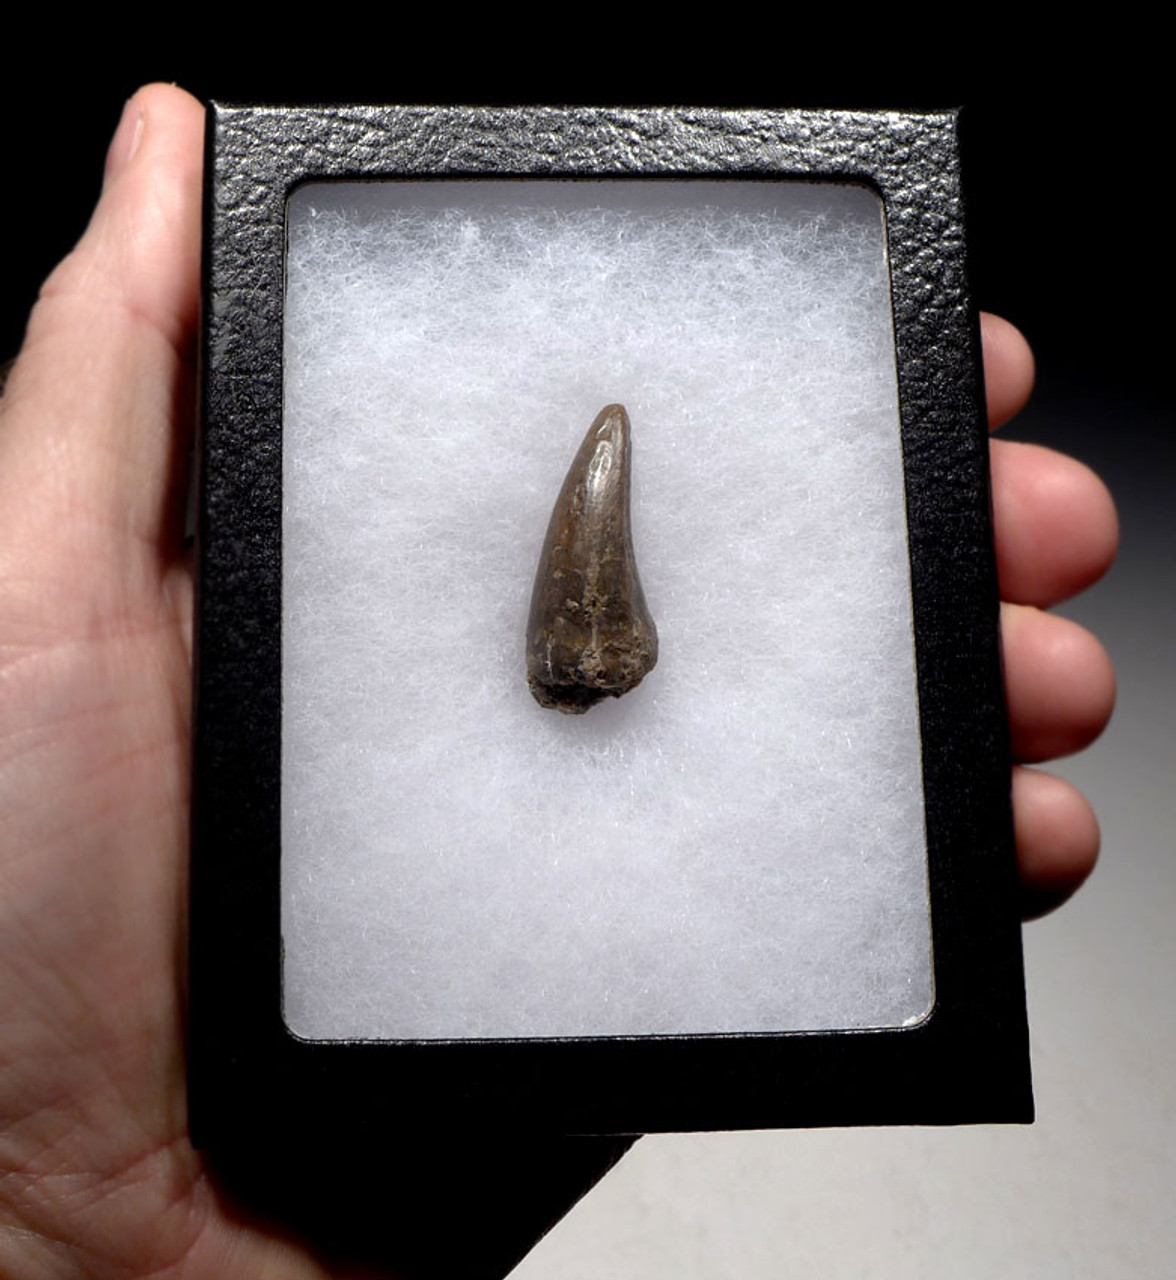 CROC051 - JAVA MAN KILLER CROCODILE FOSSIL TOOTH FROM THE FAMOUS HOMO ERECTUS DEPOSITS OF SOLO RIVER INDONESIA